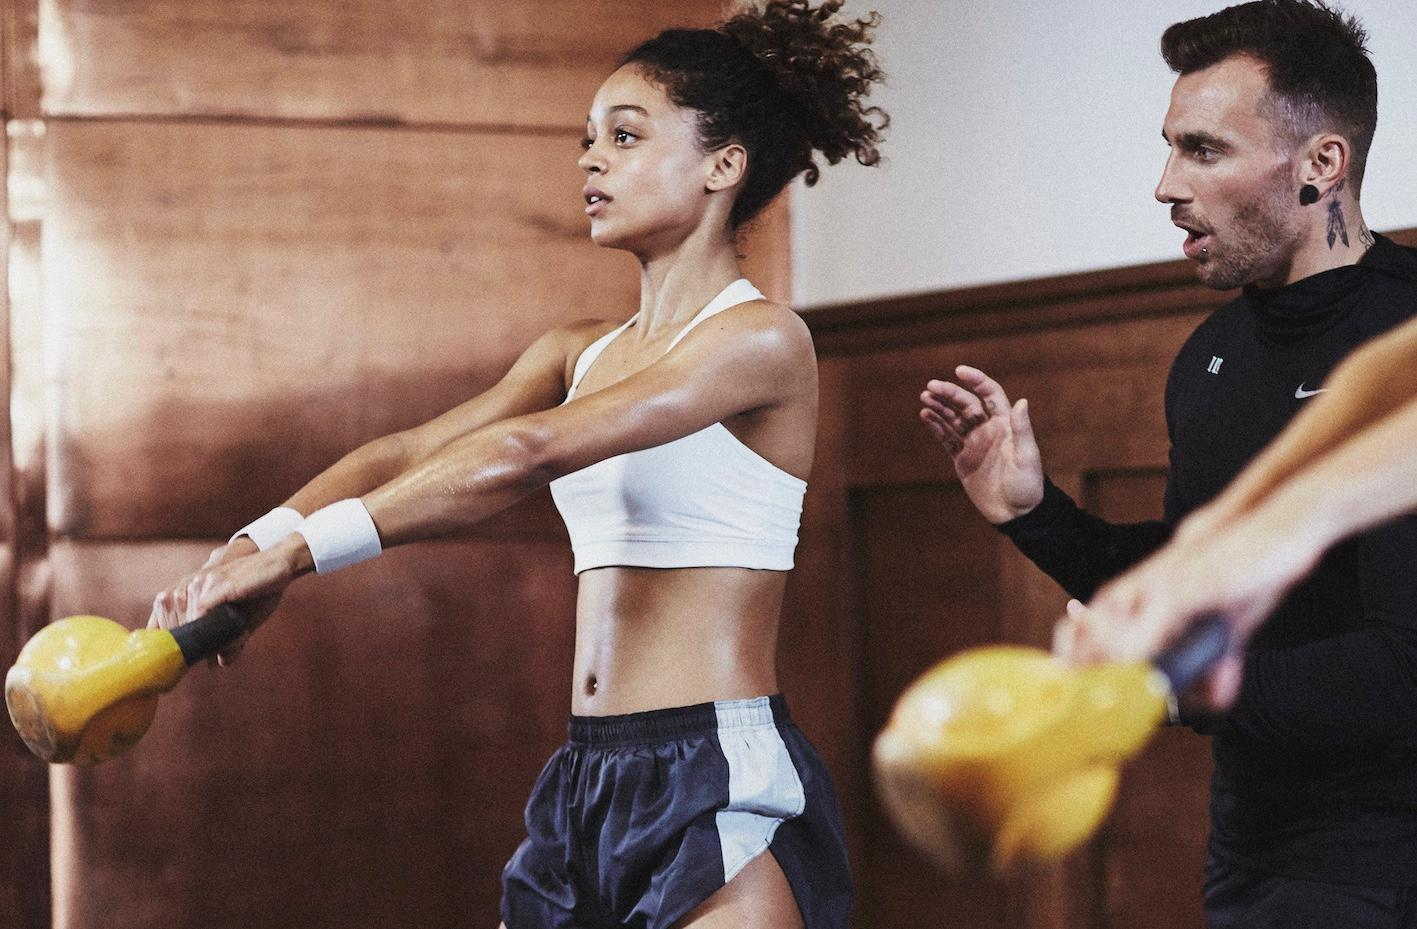 The decision to grow its portfolio has been driven by increased participation in group exercise and personal training